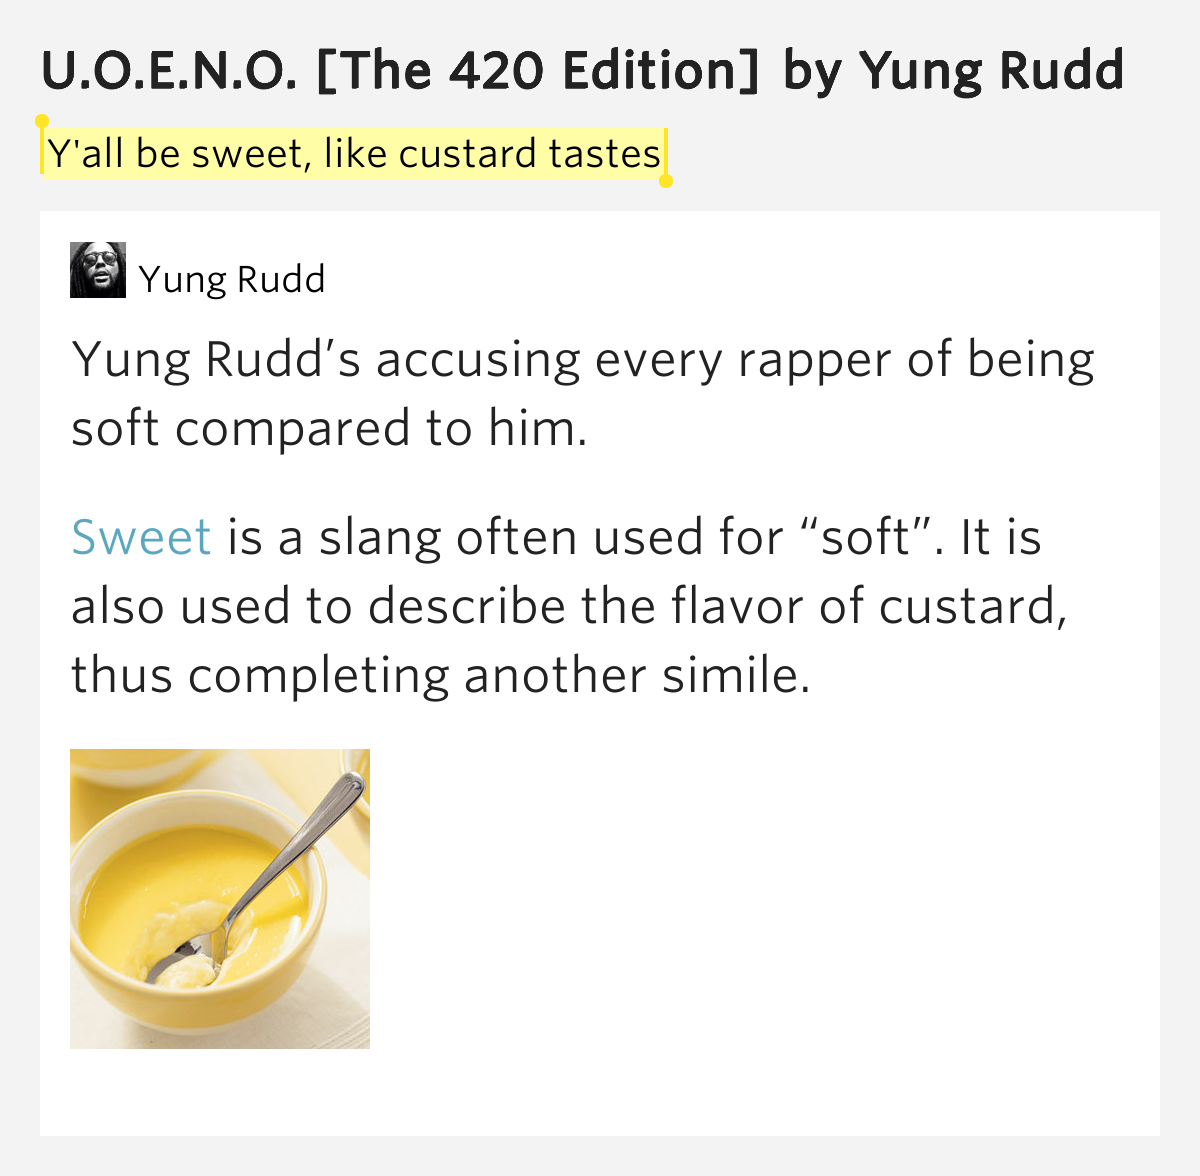 yall be sweet like custard tastes � uoeno the 420